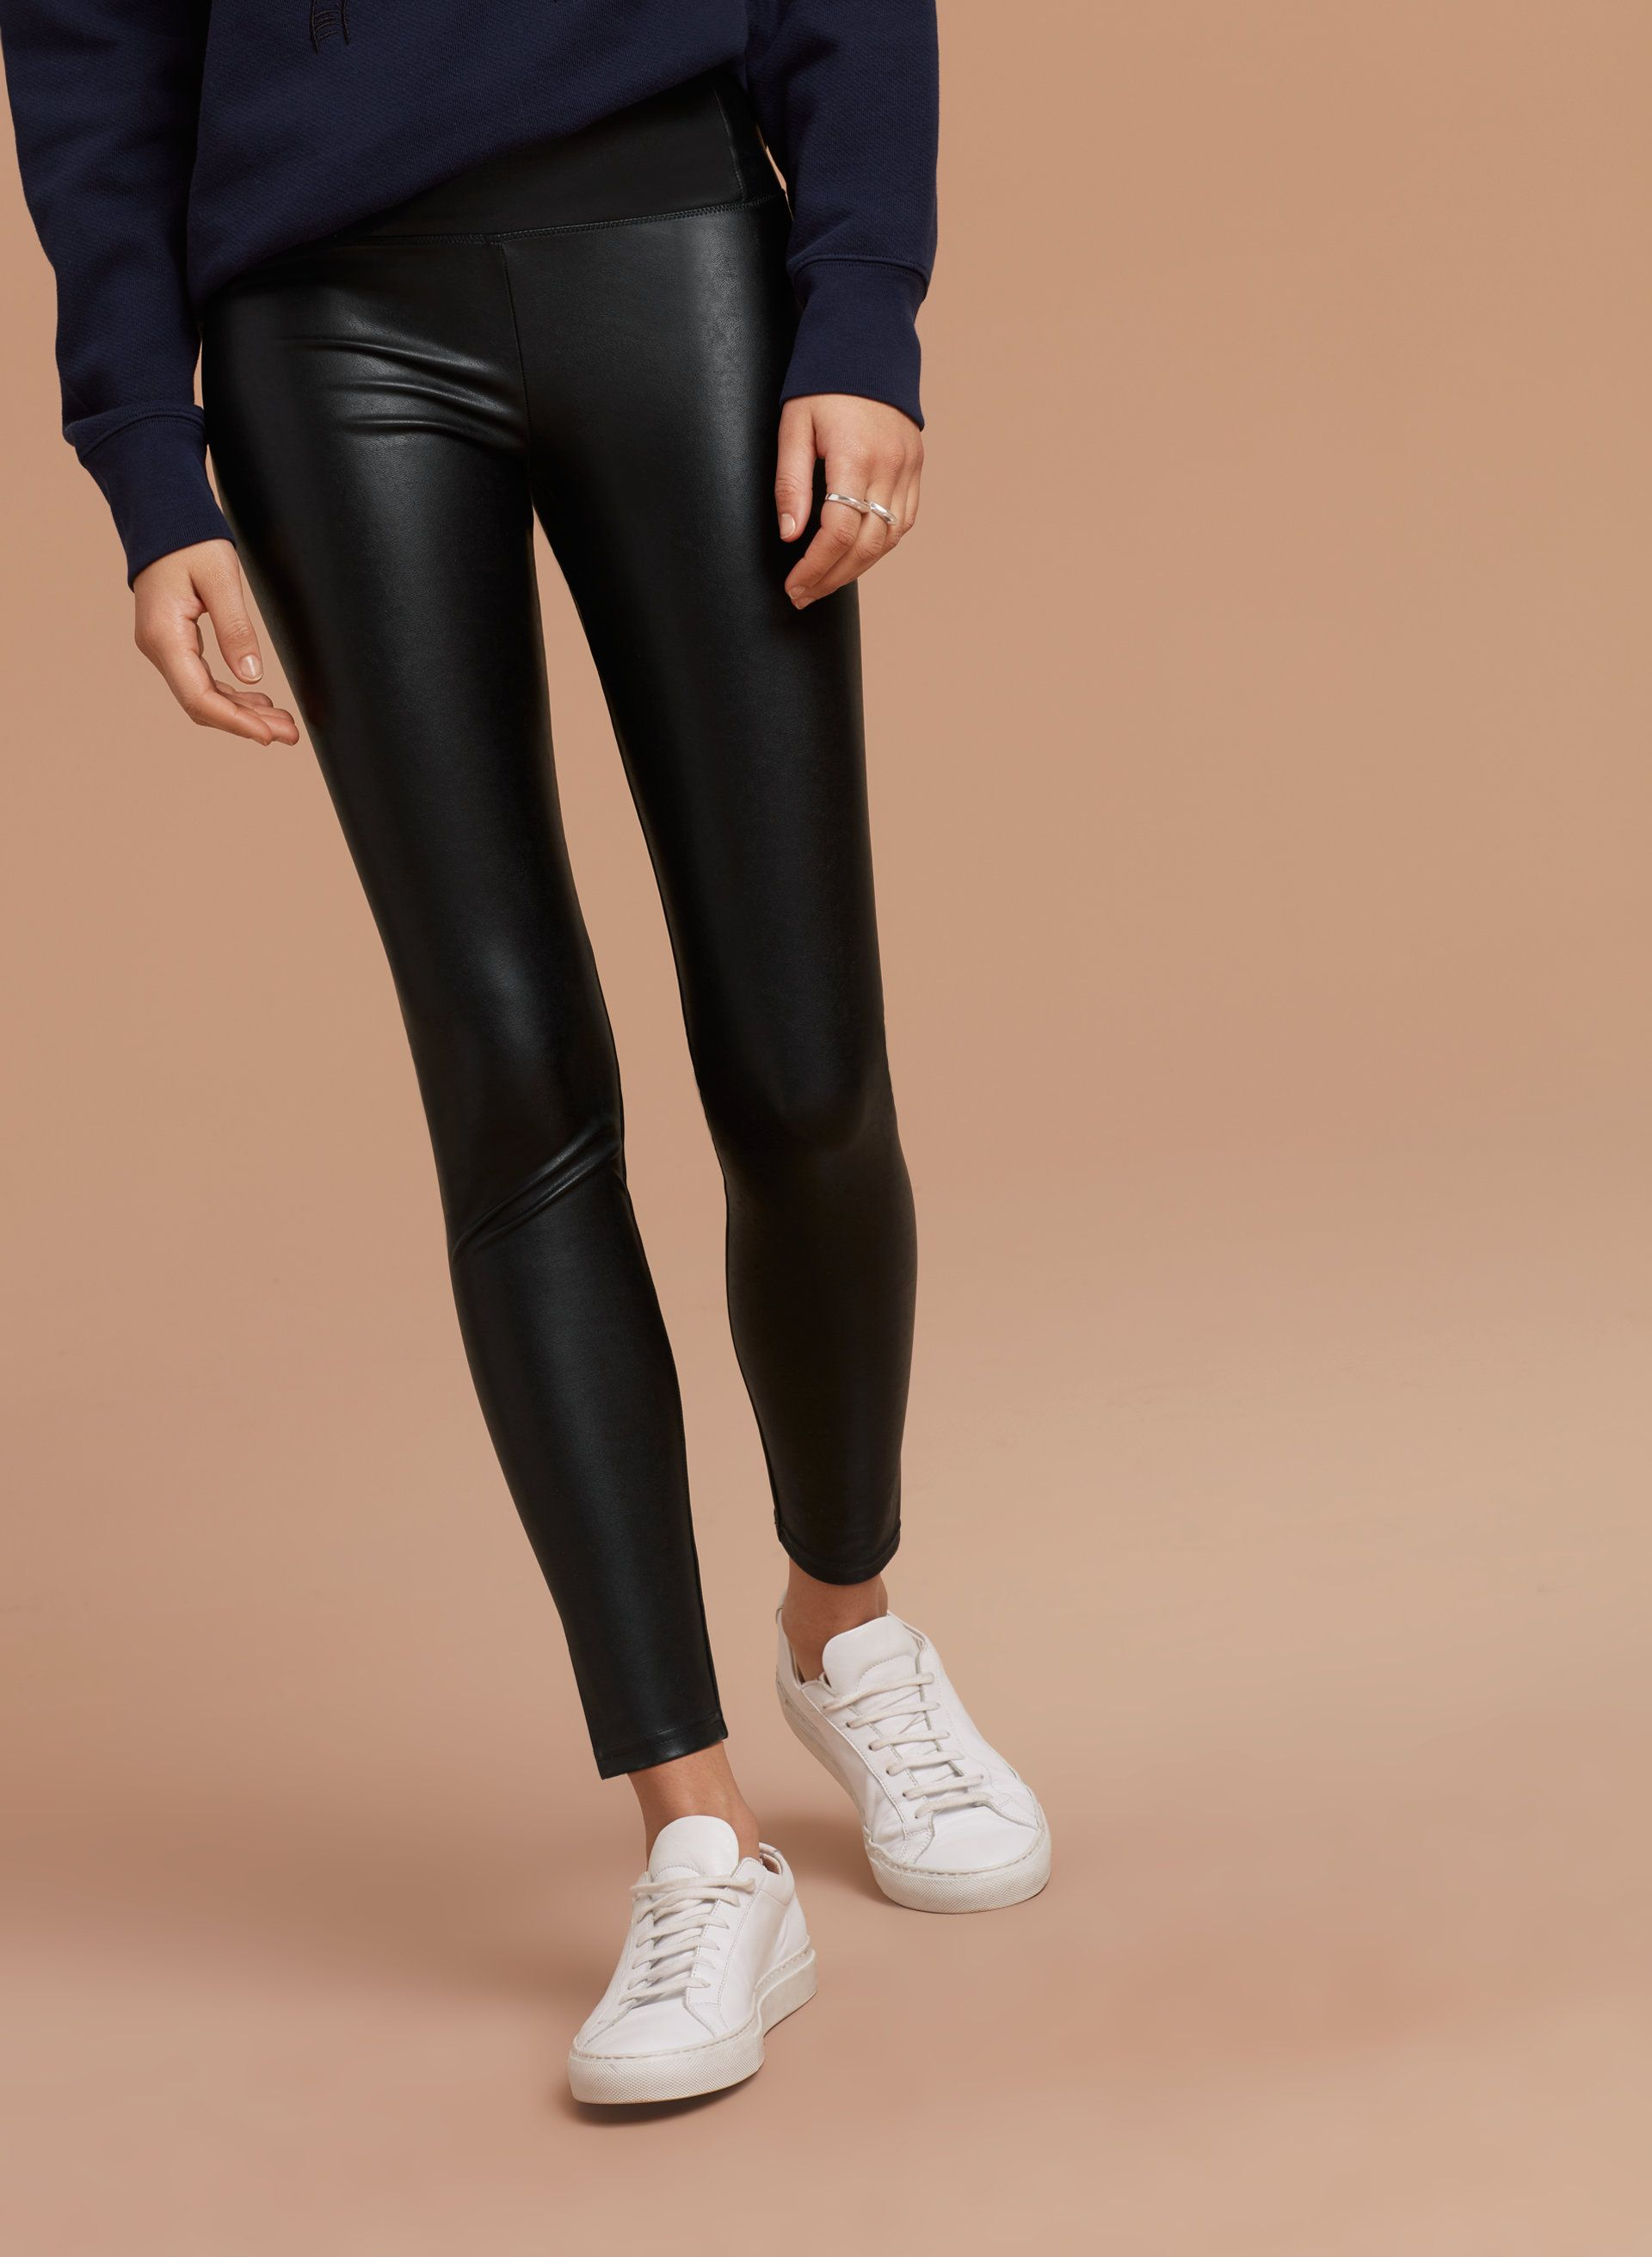 Wilfred Free Daria Pant Ankle Aritzia Pants Vegan Leather Leggings Ankle Pants